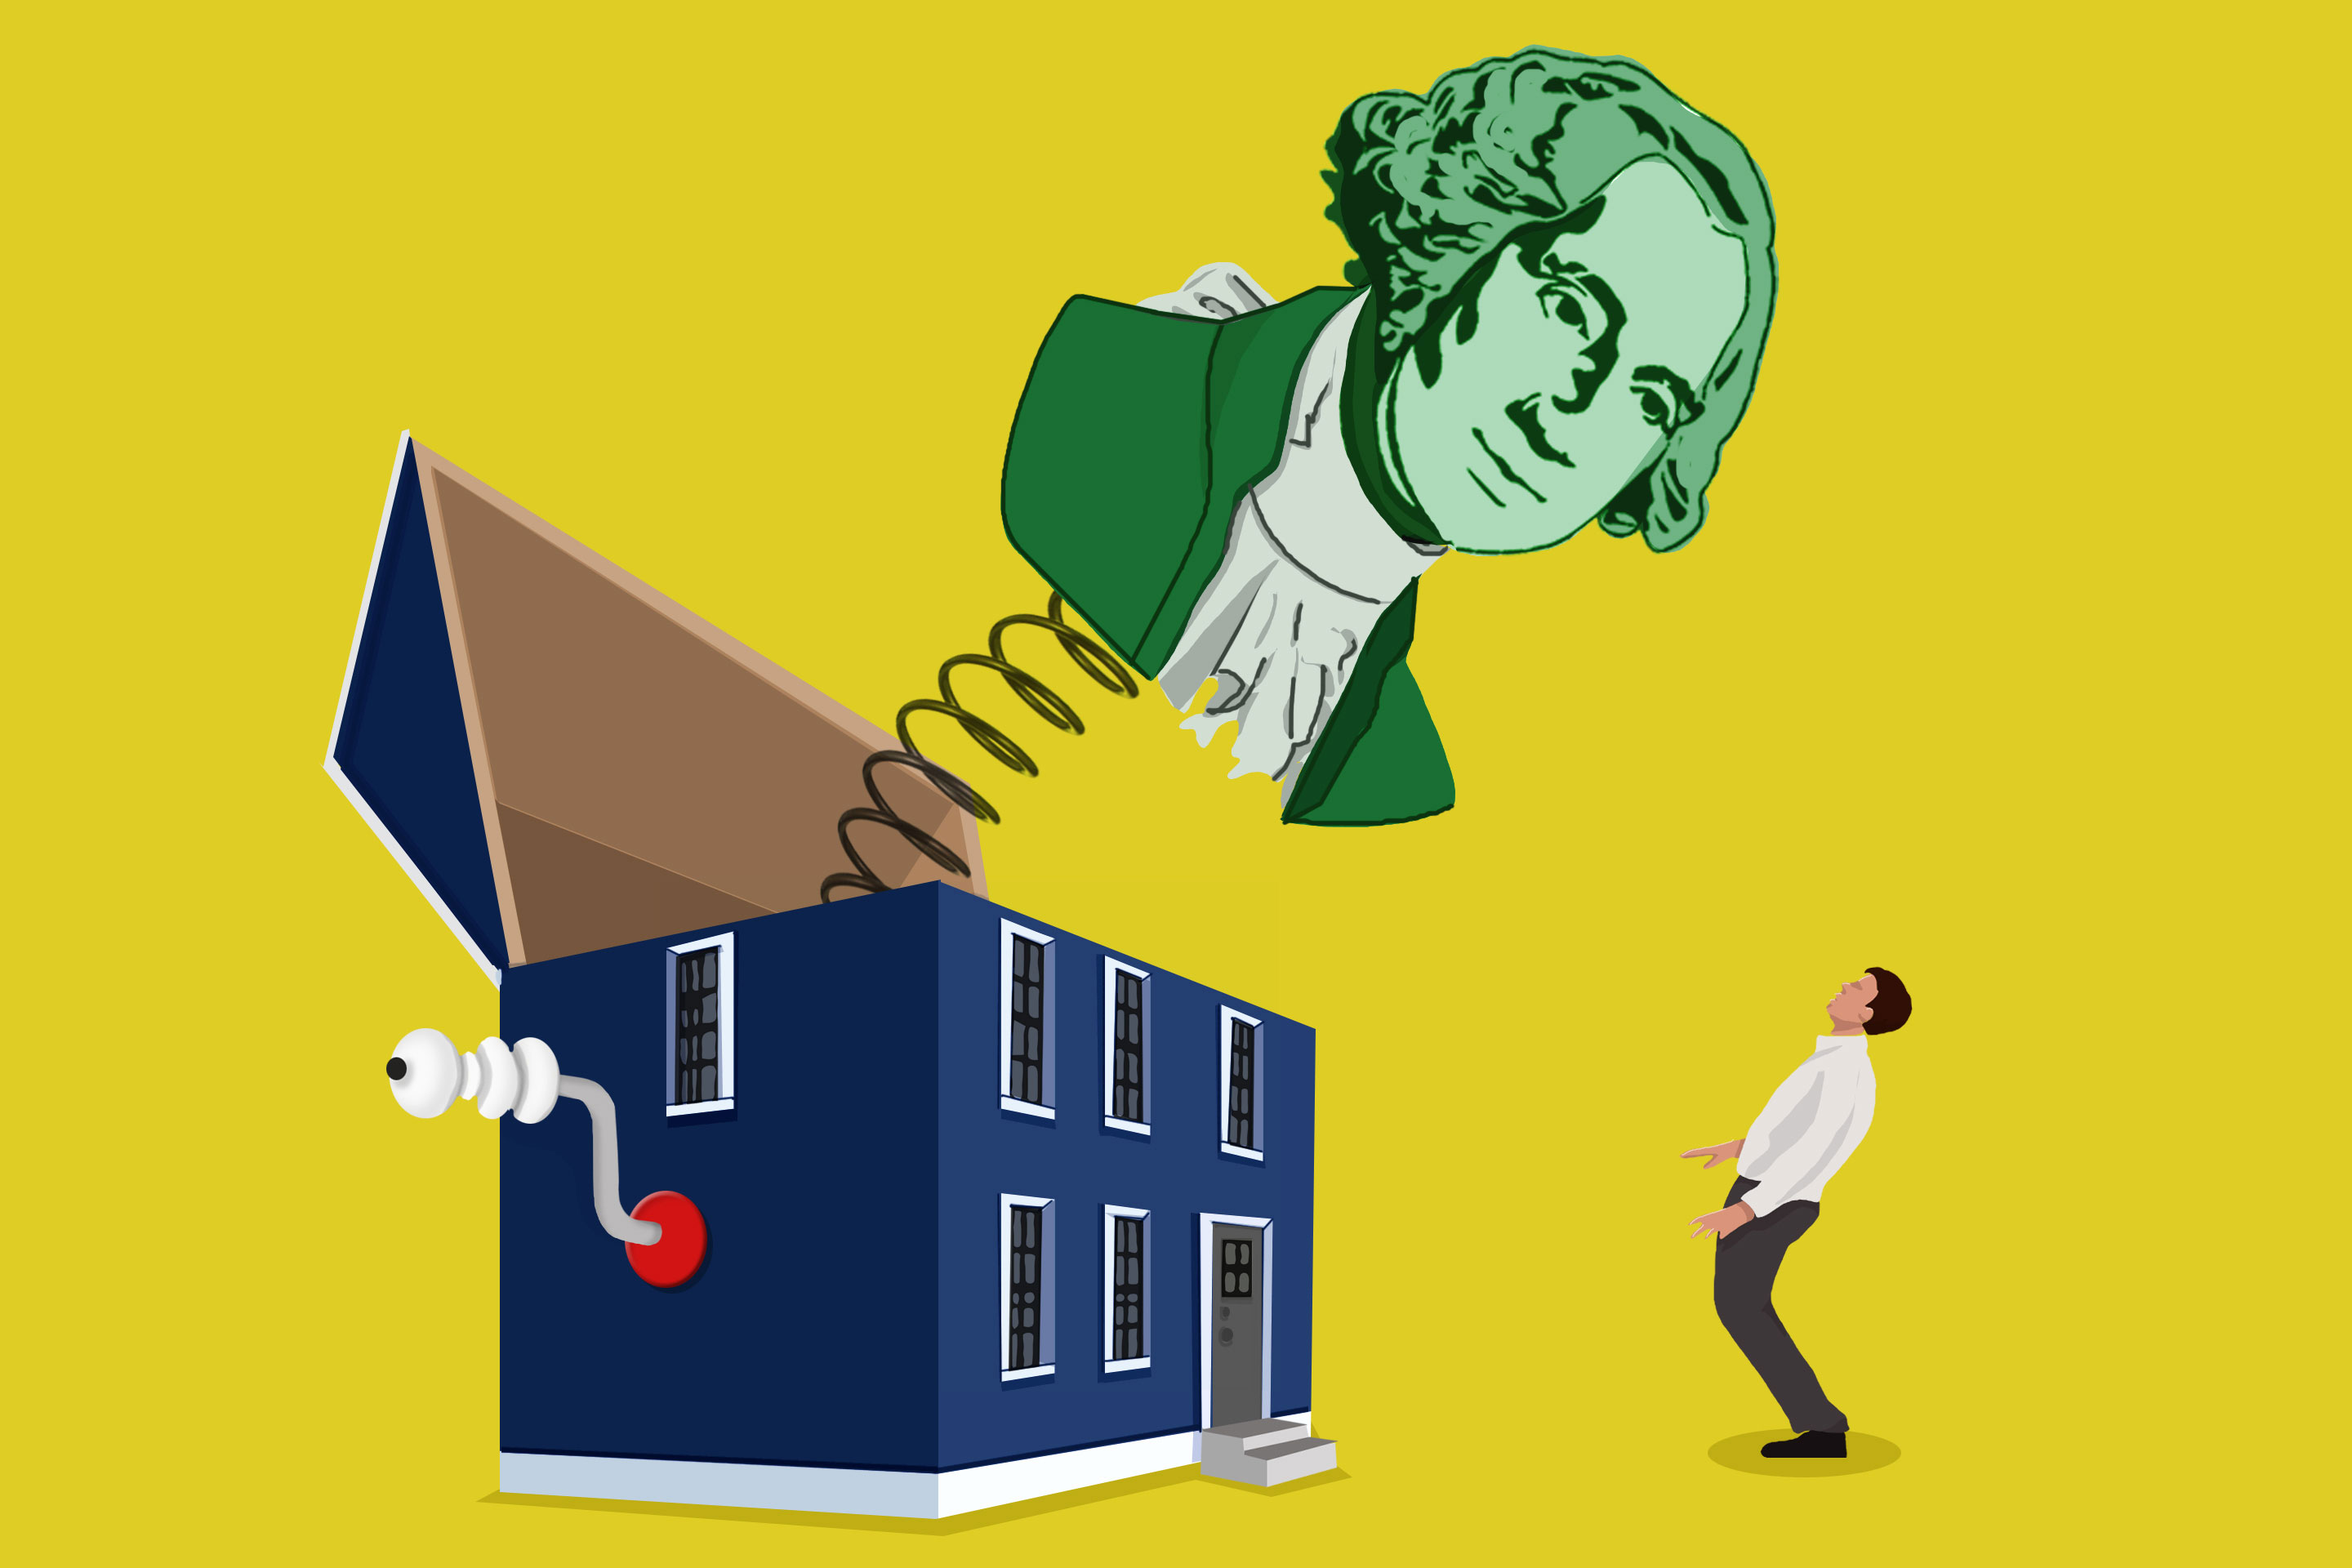 What Is PMI? Everything You Need to Know About the Hidden Cost Hitting 52% of Millennial Home Buyers